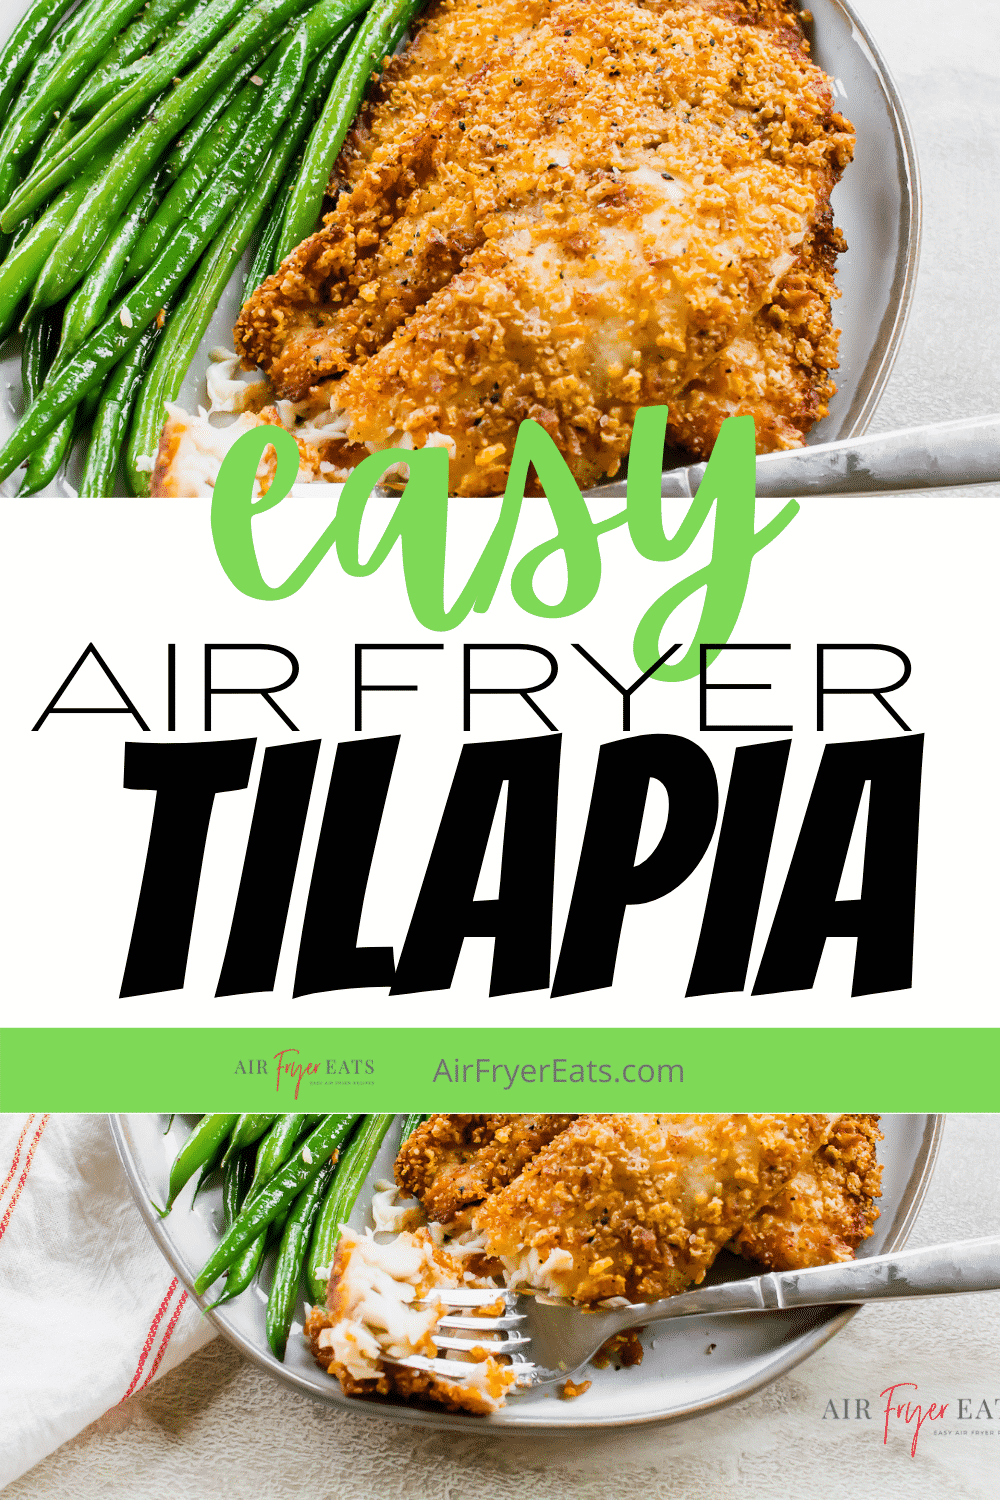 Air Fryer Tilapia is so fast and flaky! Coat this yummy white fish in seasoned breadcrumbs for a quick fish dinner with pantry staples. #airfryertilapia #airfryerfish #tilapia via @vegetarianmamma